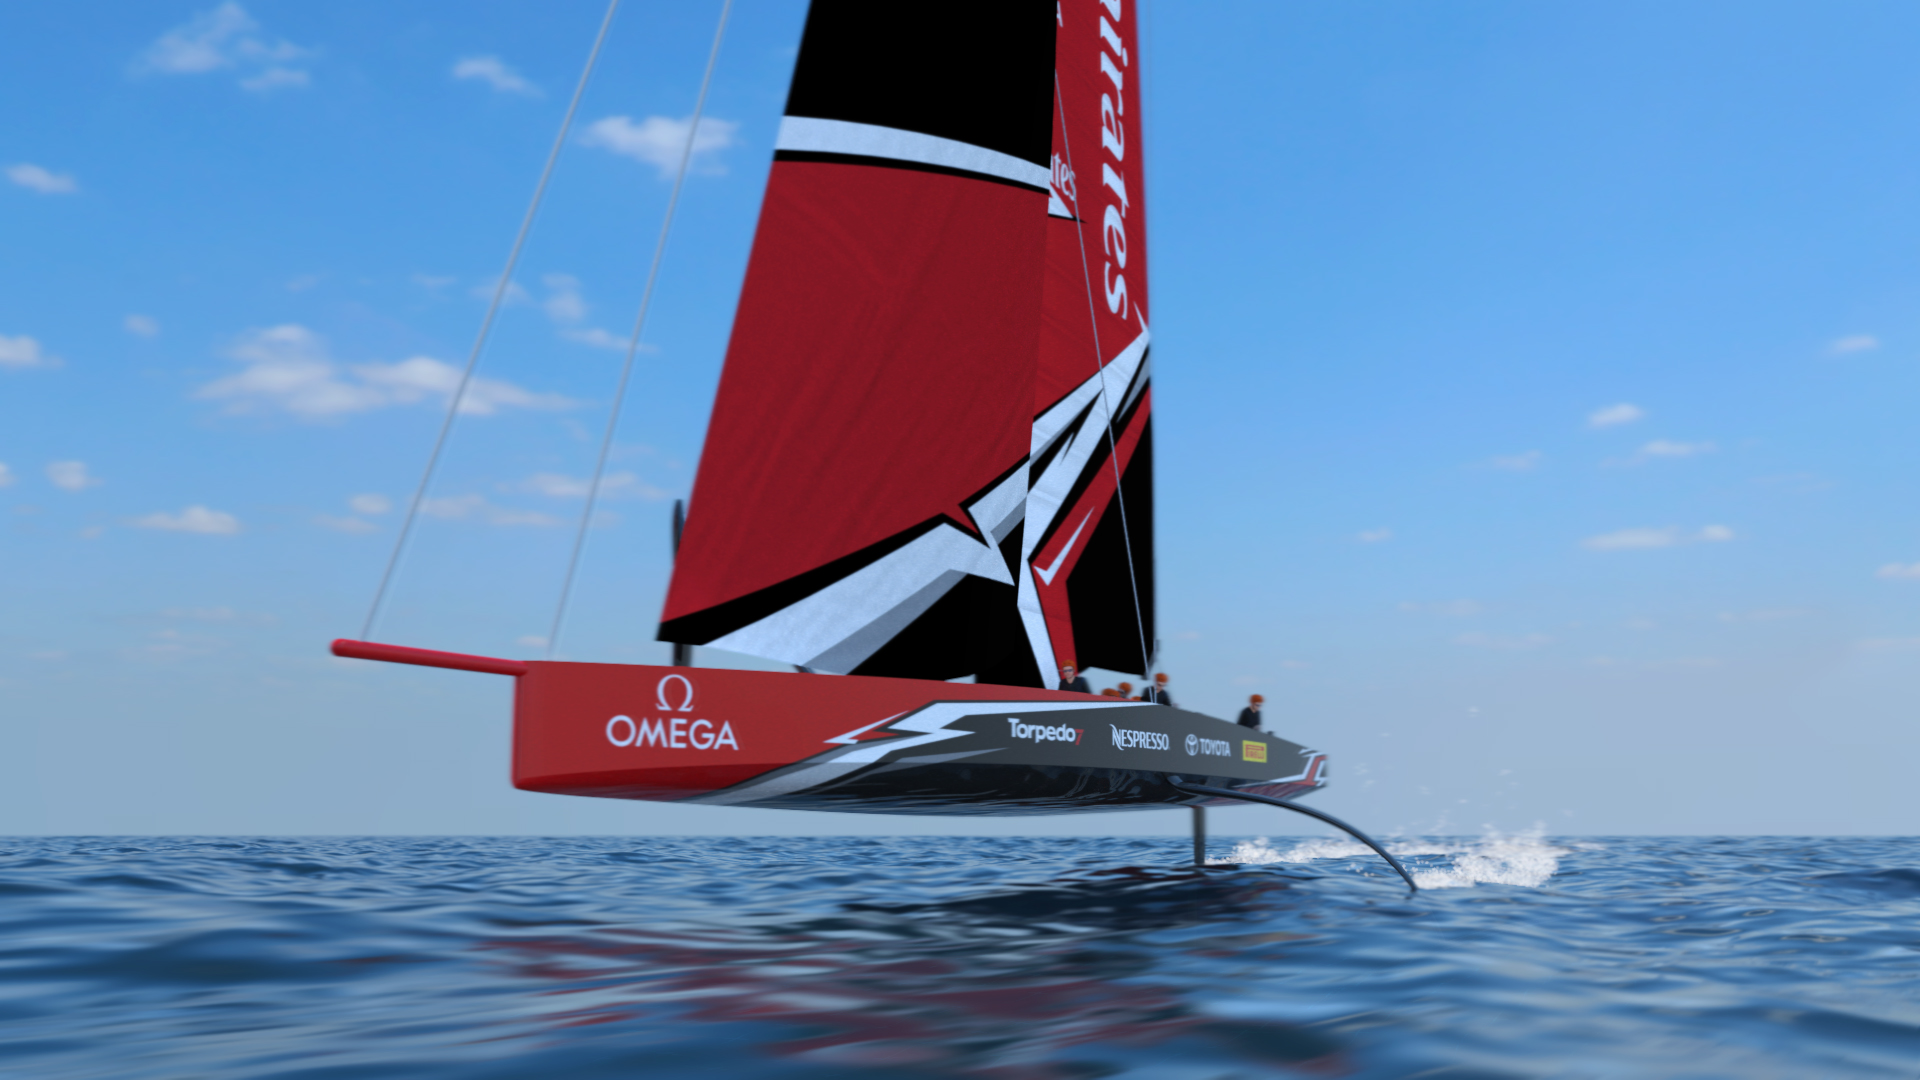 The fully foiling AC75.